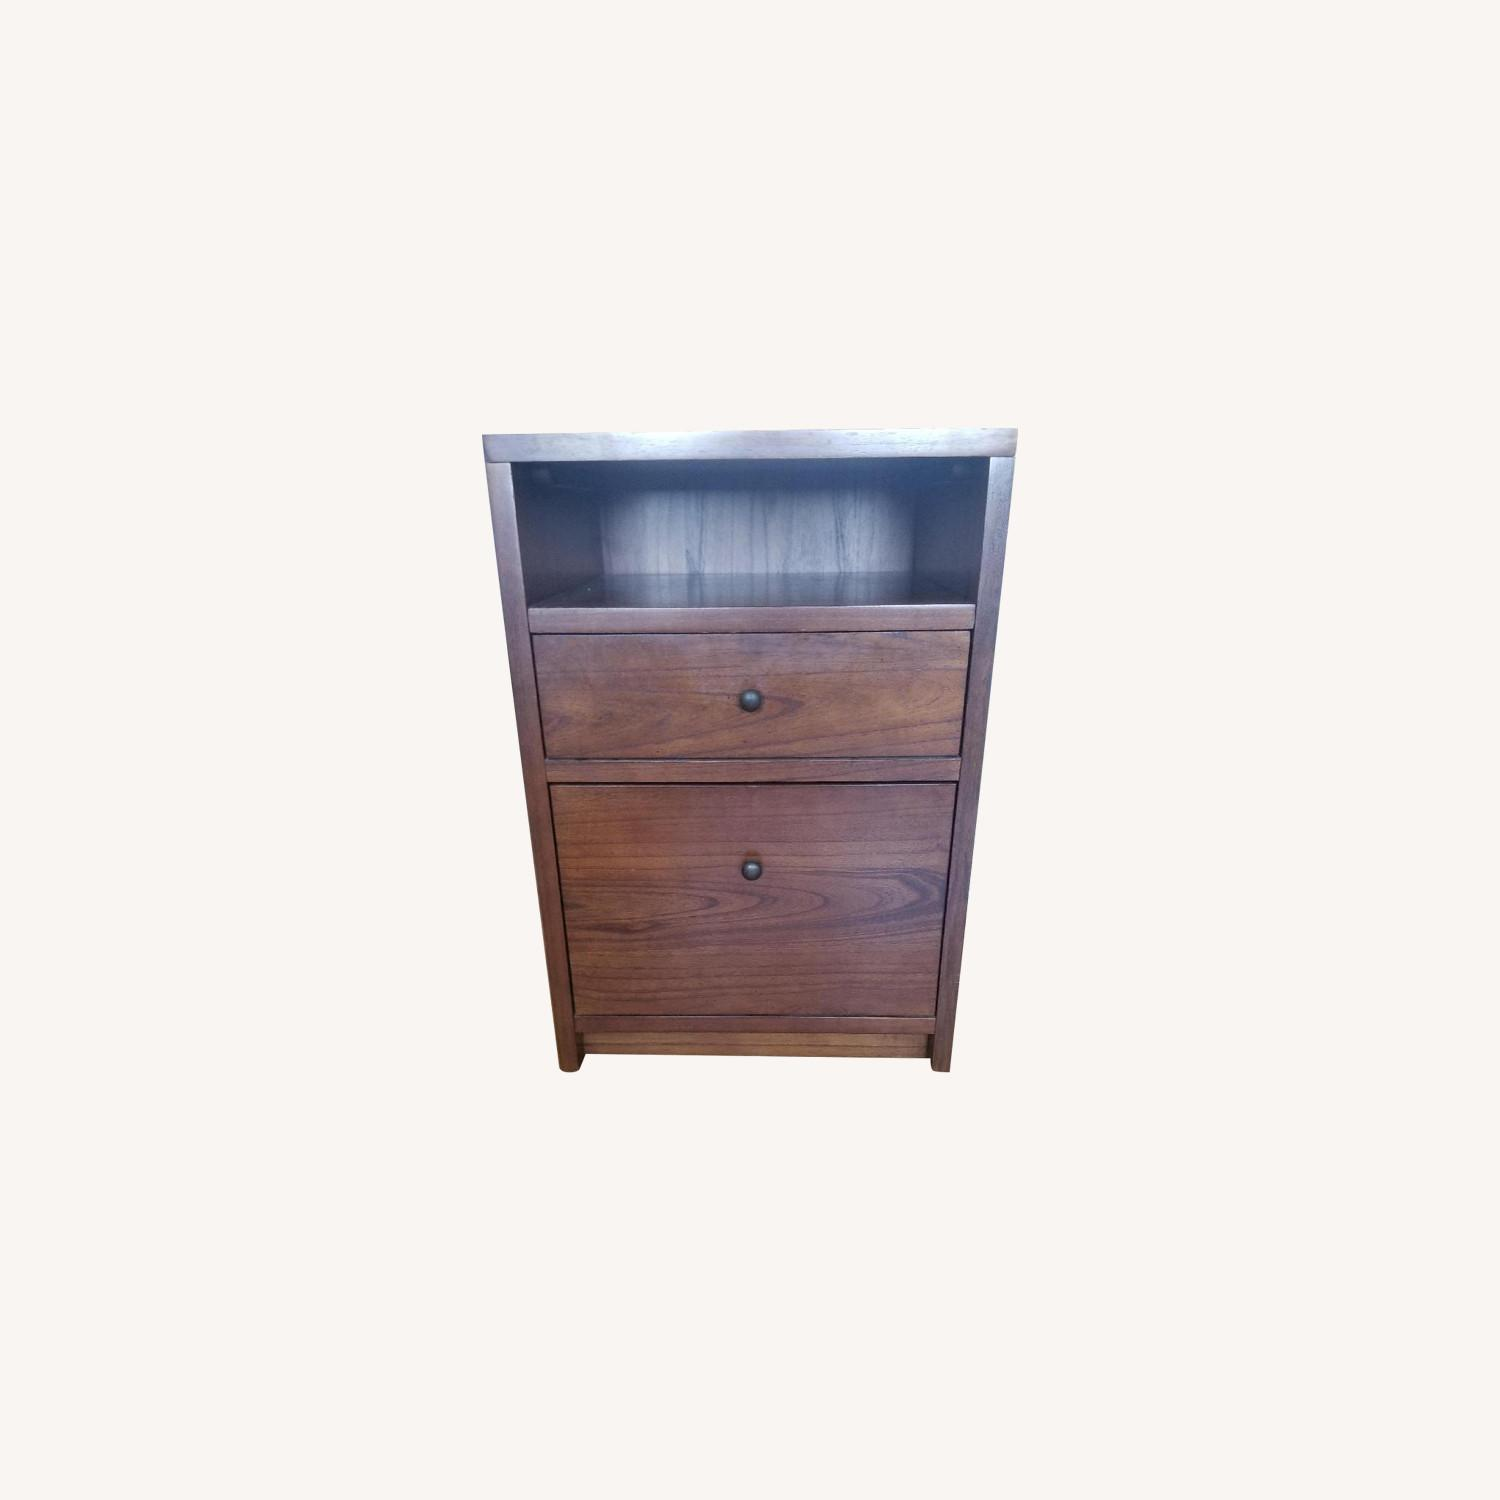 Pottery Barn Wood Filing Cabinet and Bedside Stand - image-0